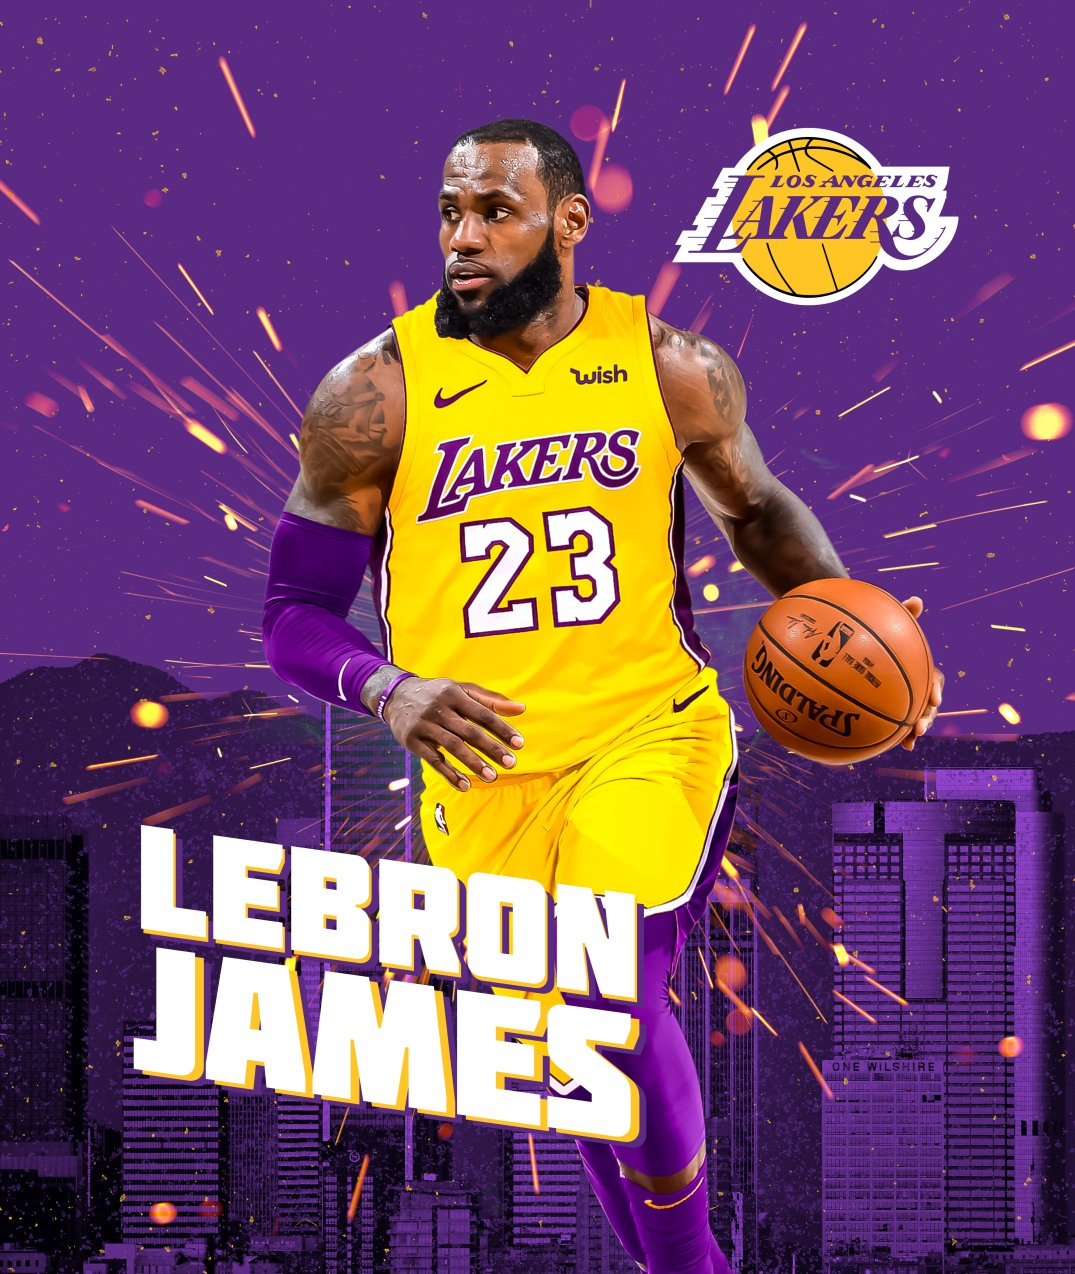 575_NBA_LeBronJames_Lakers